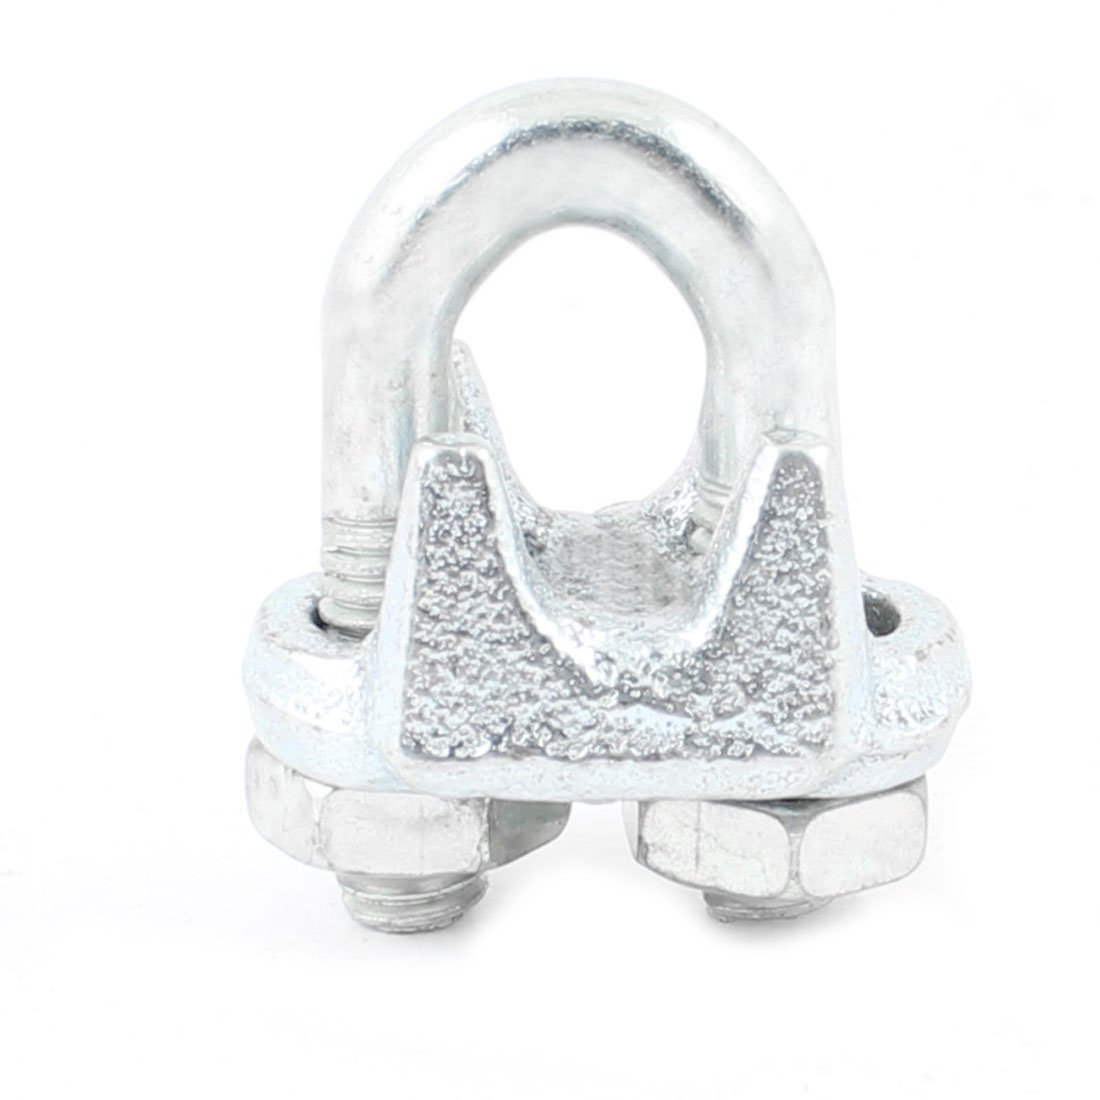 Aexit Hardware Tool Chain /& Rope Fittings Silver Tone 8mm 5//16 Wire Rope Clip Wire Rope Clips Cable Clamp